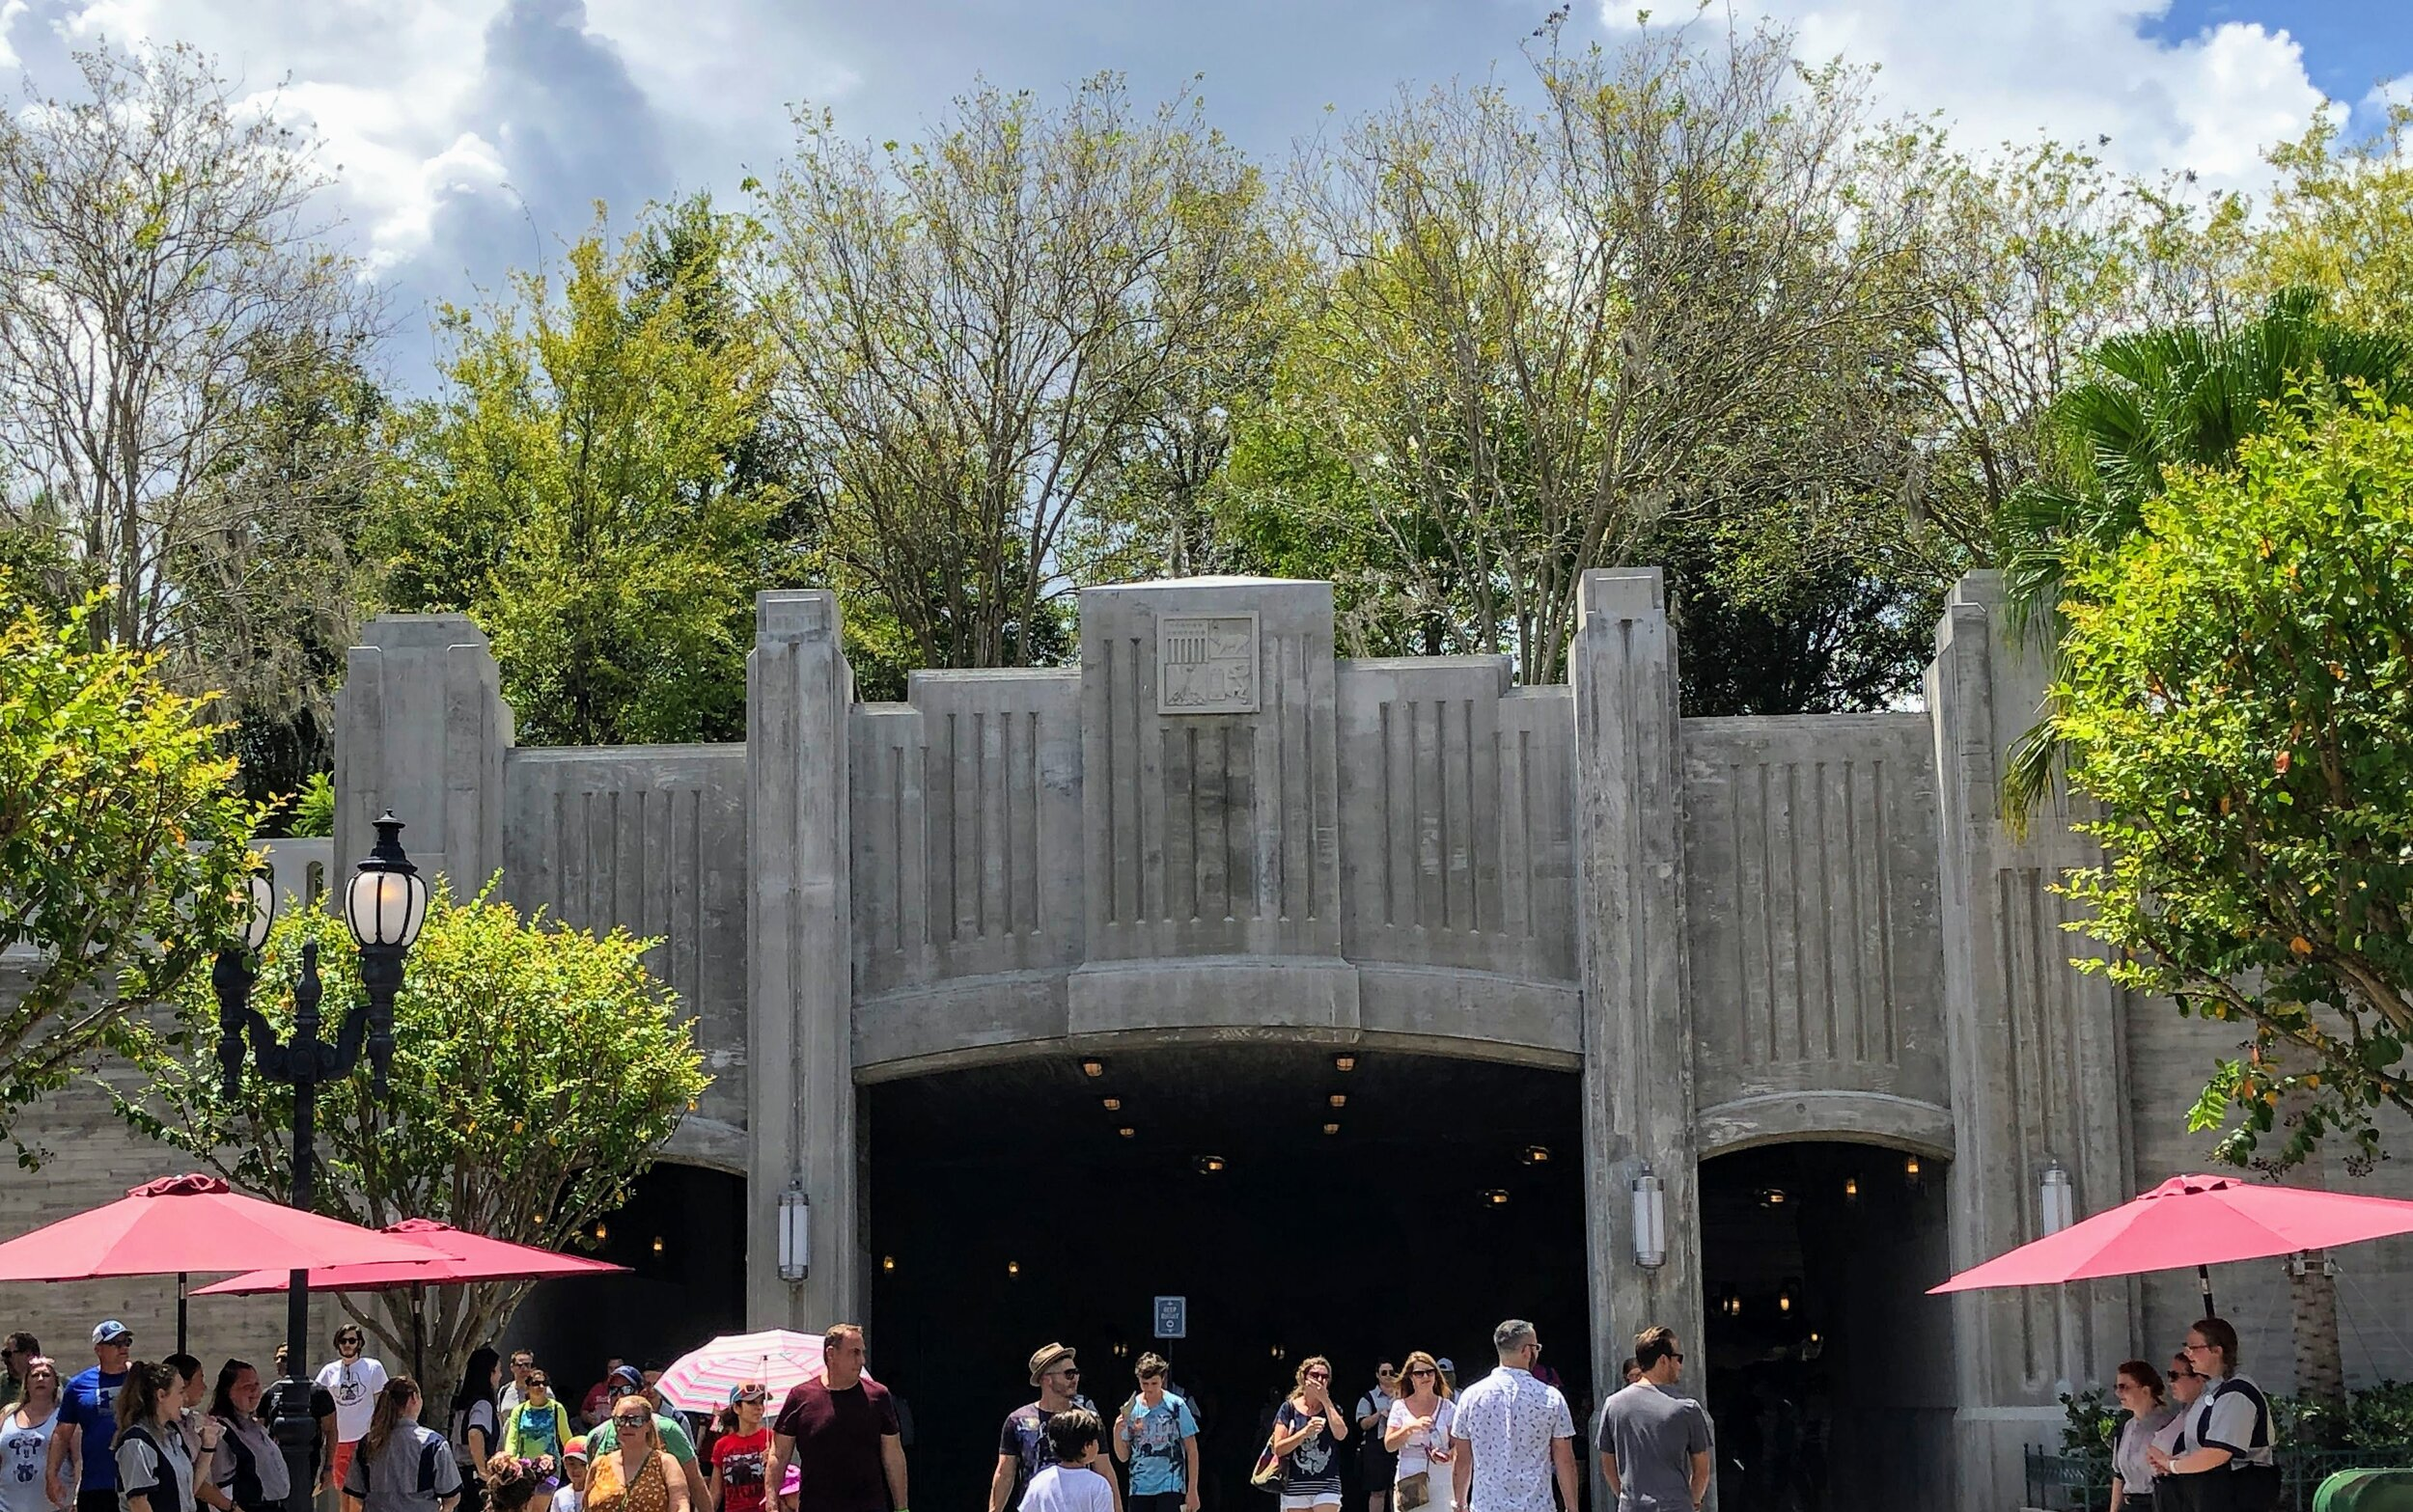 The entrance to Star Wars: Galaxy's Edge